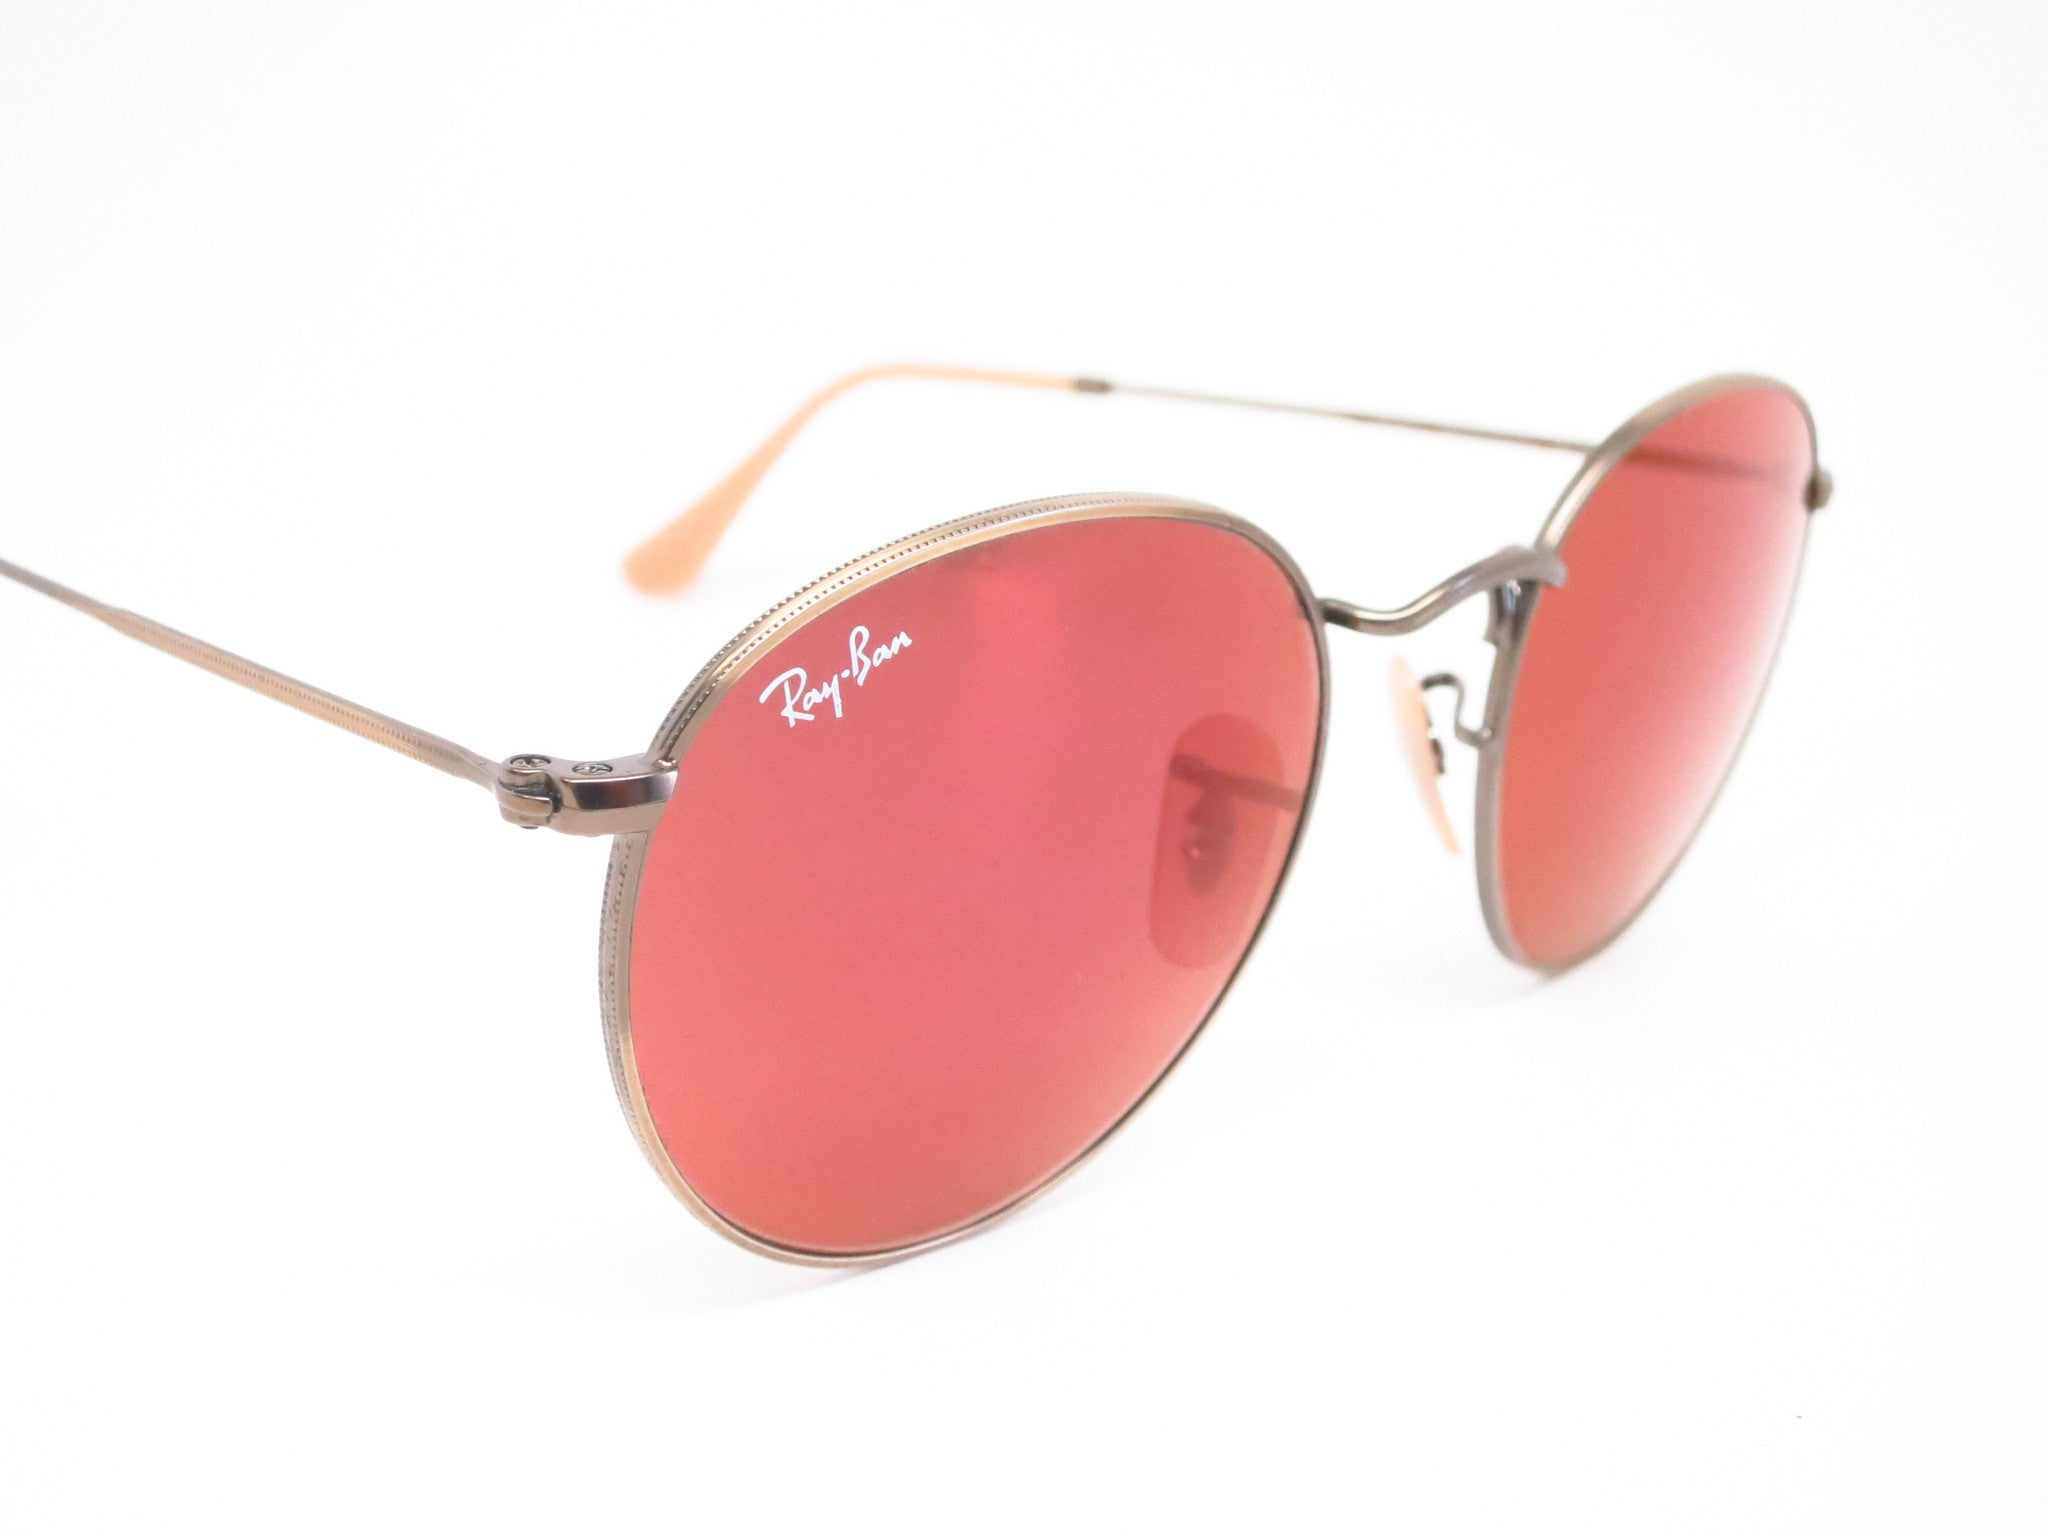 Ray Ban Rb 3447 Round Metal 167 2k Bronze Sunglasses Eye